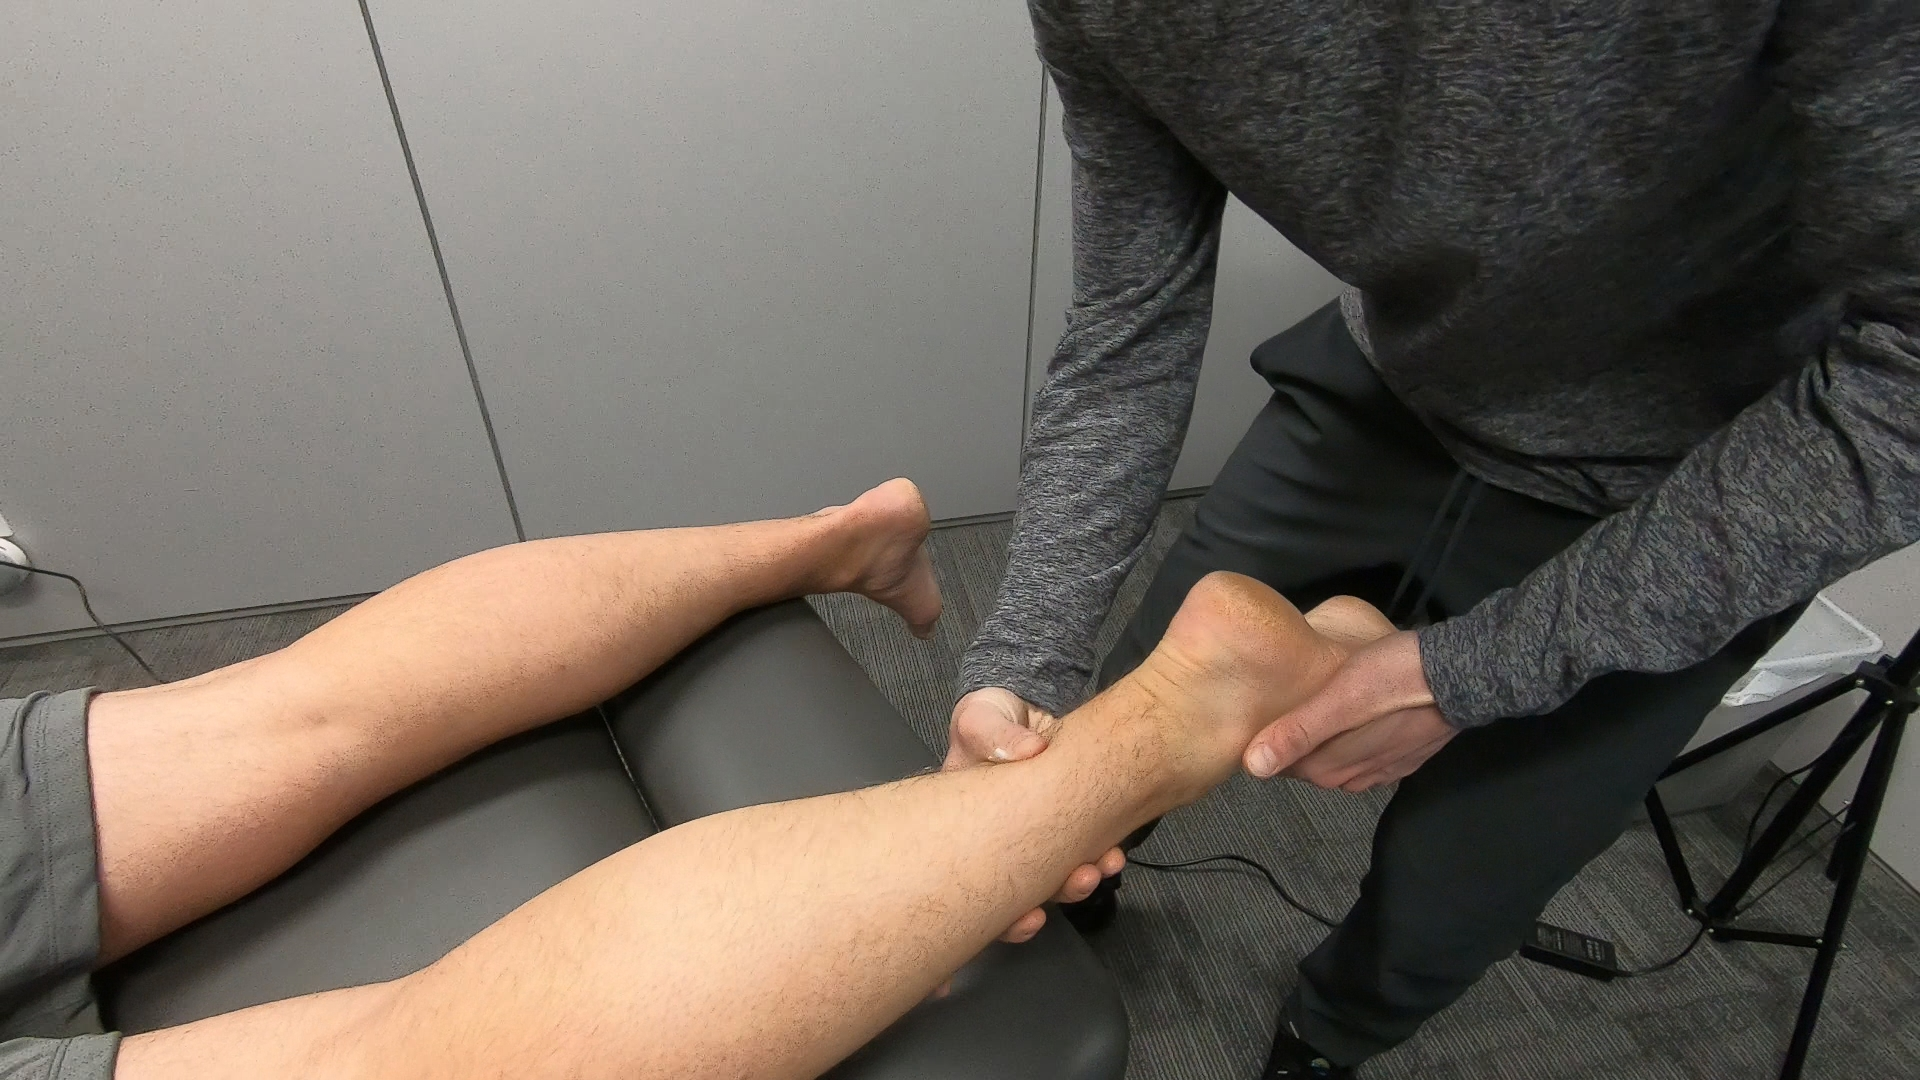 How to treat ankle pain?